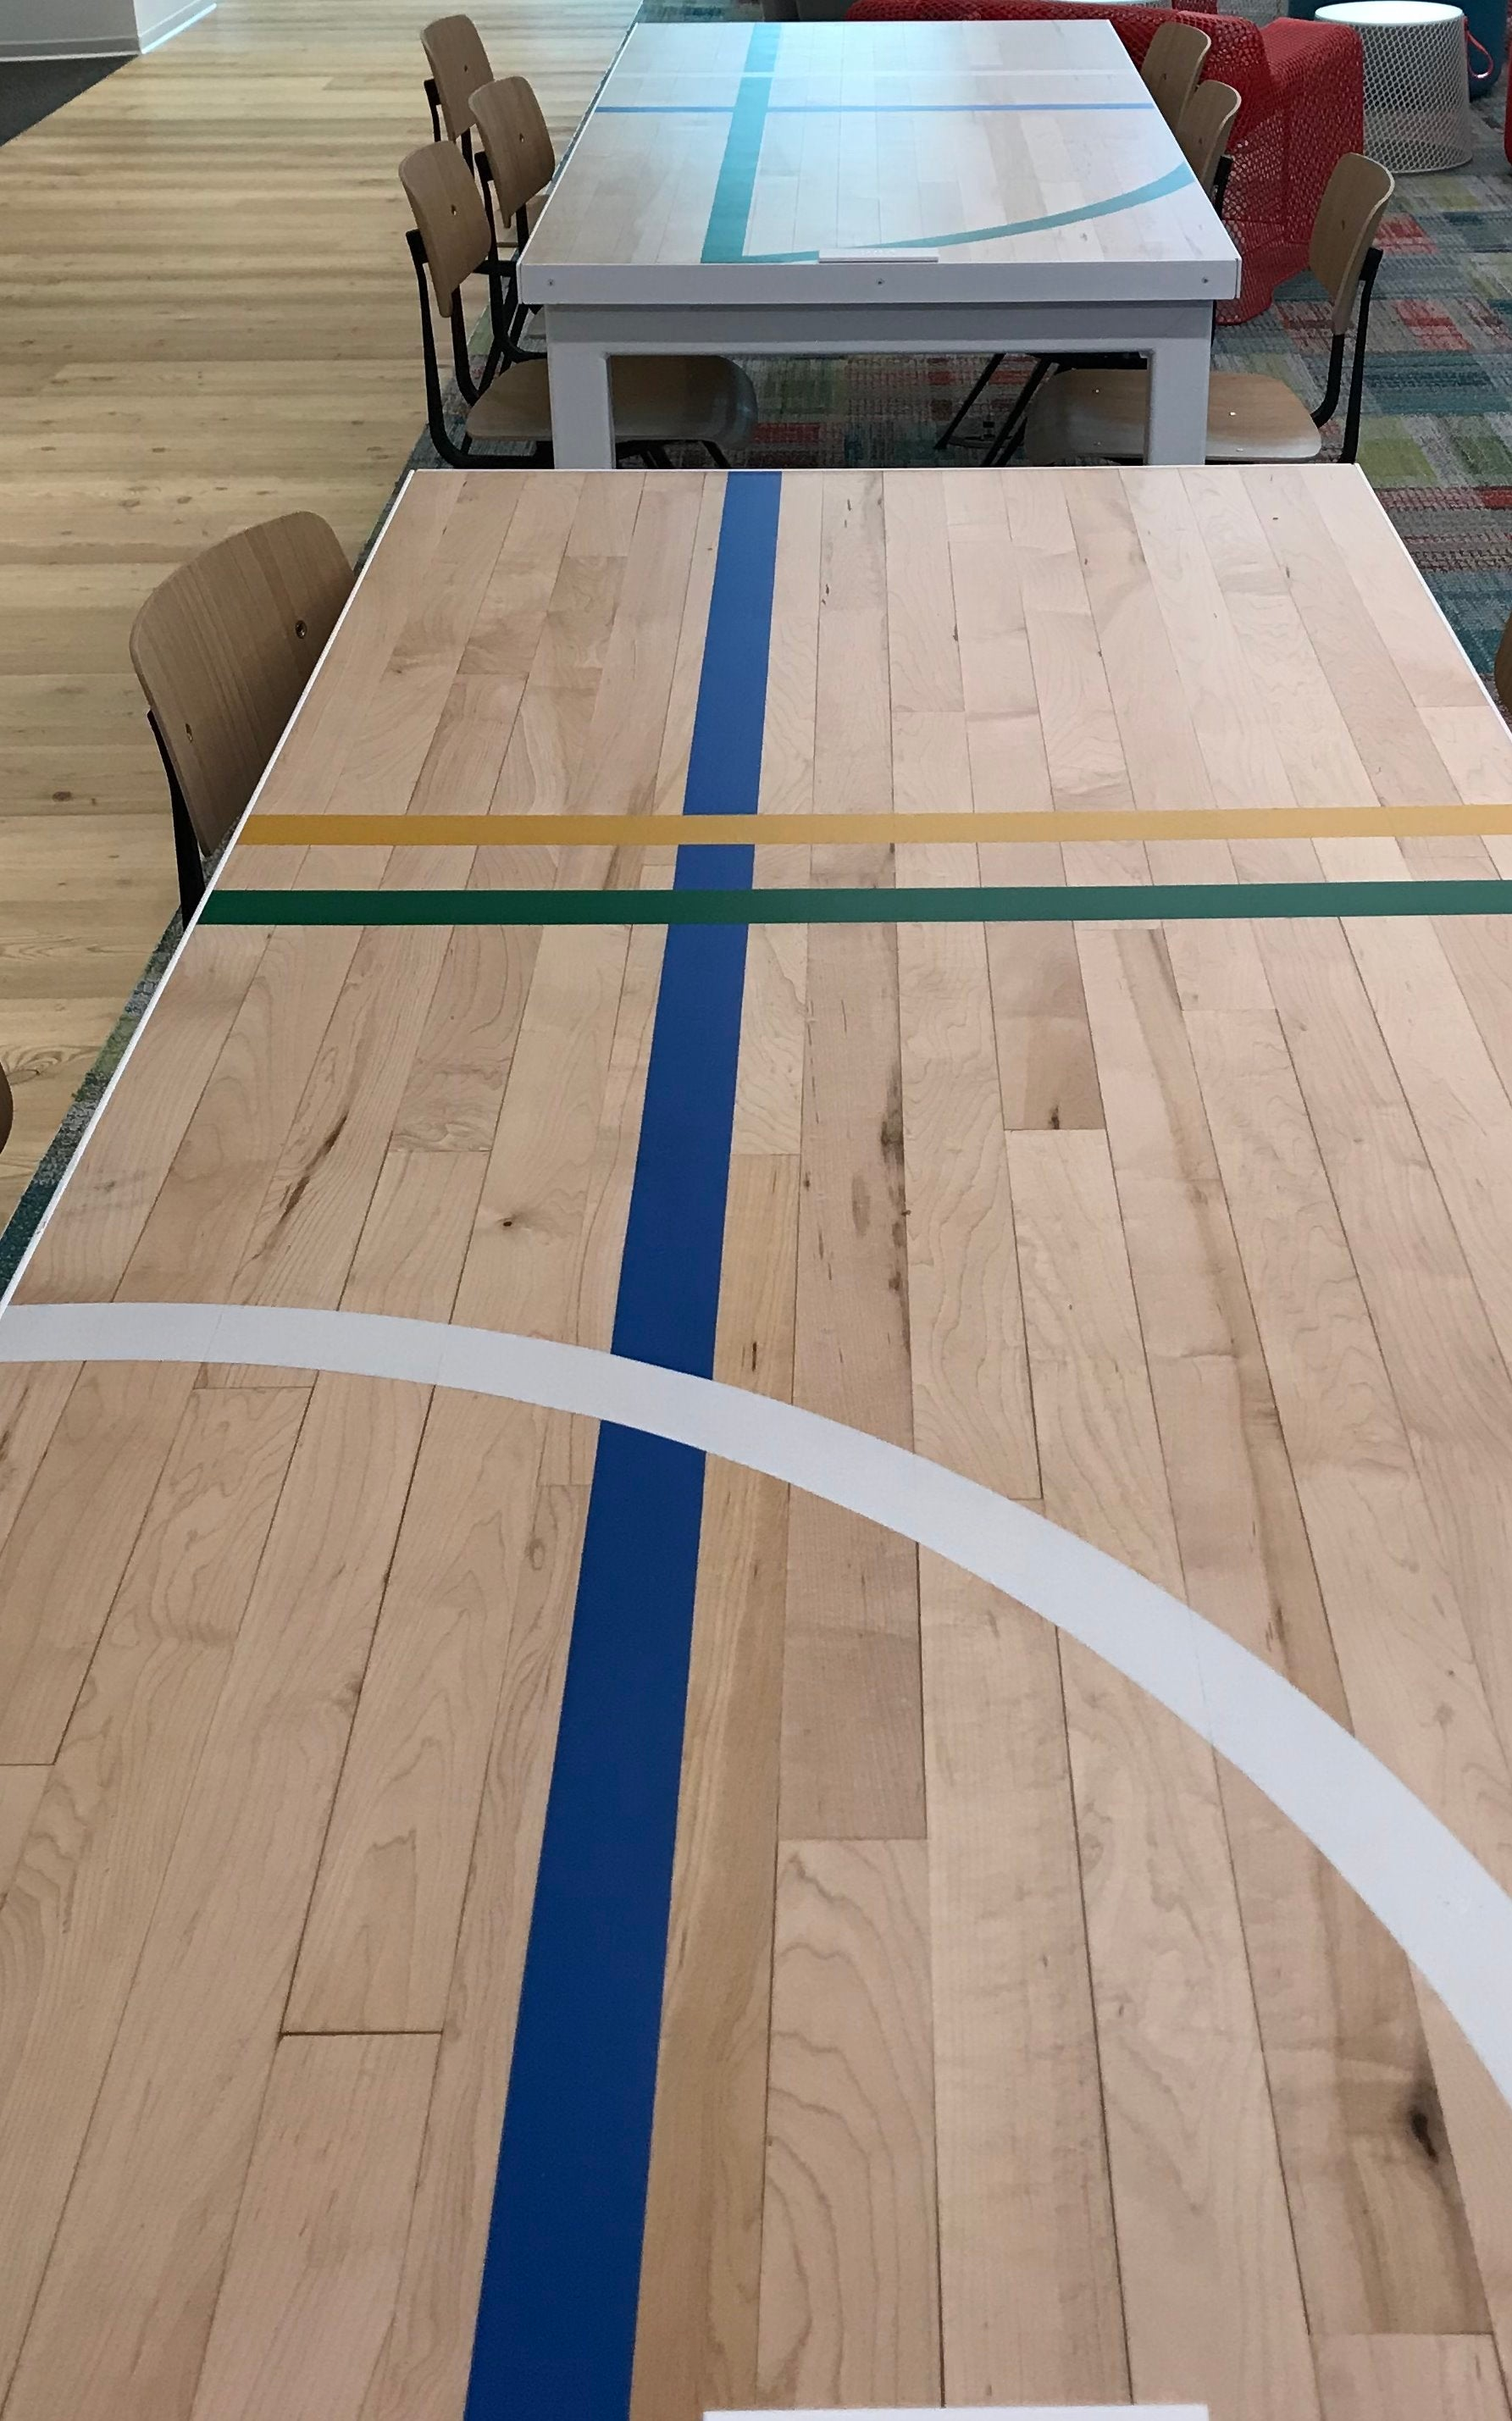 Maple Gym Floor table | Avanade Lunch Room, Seattle, WA